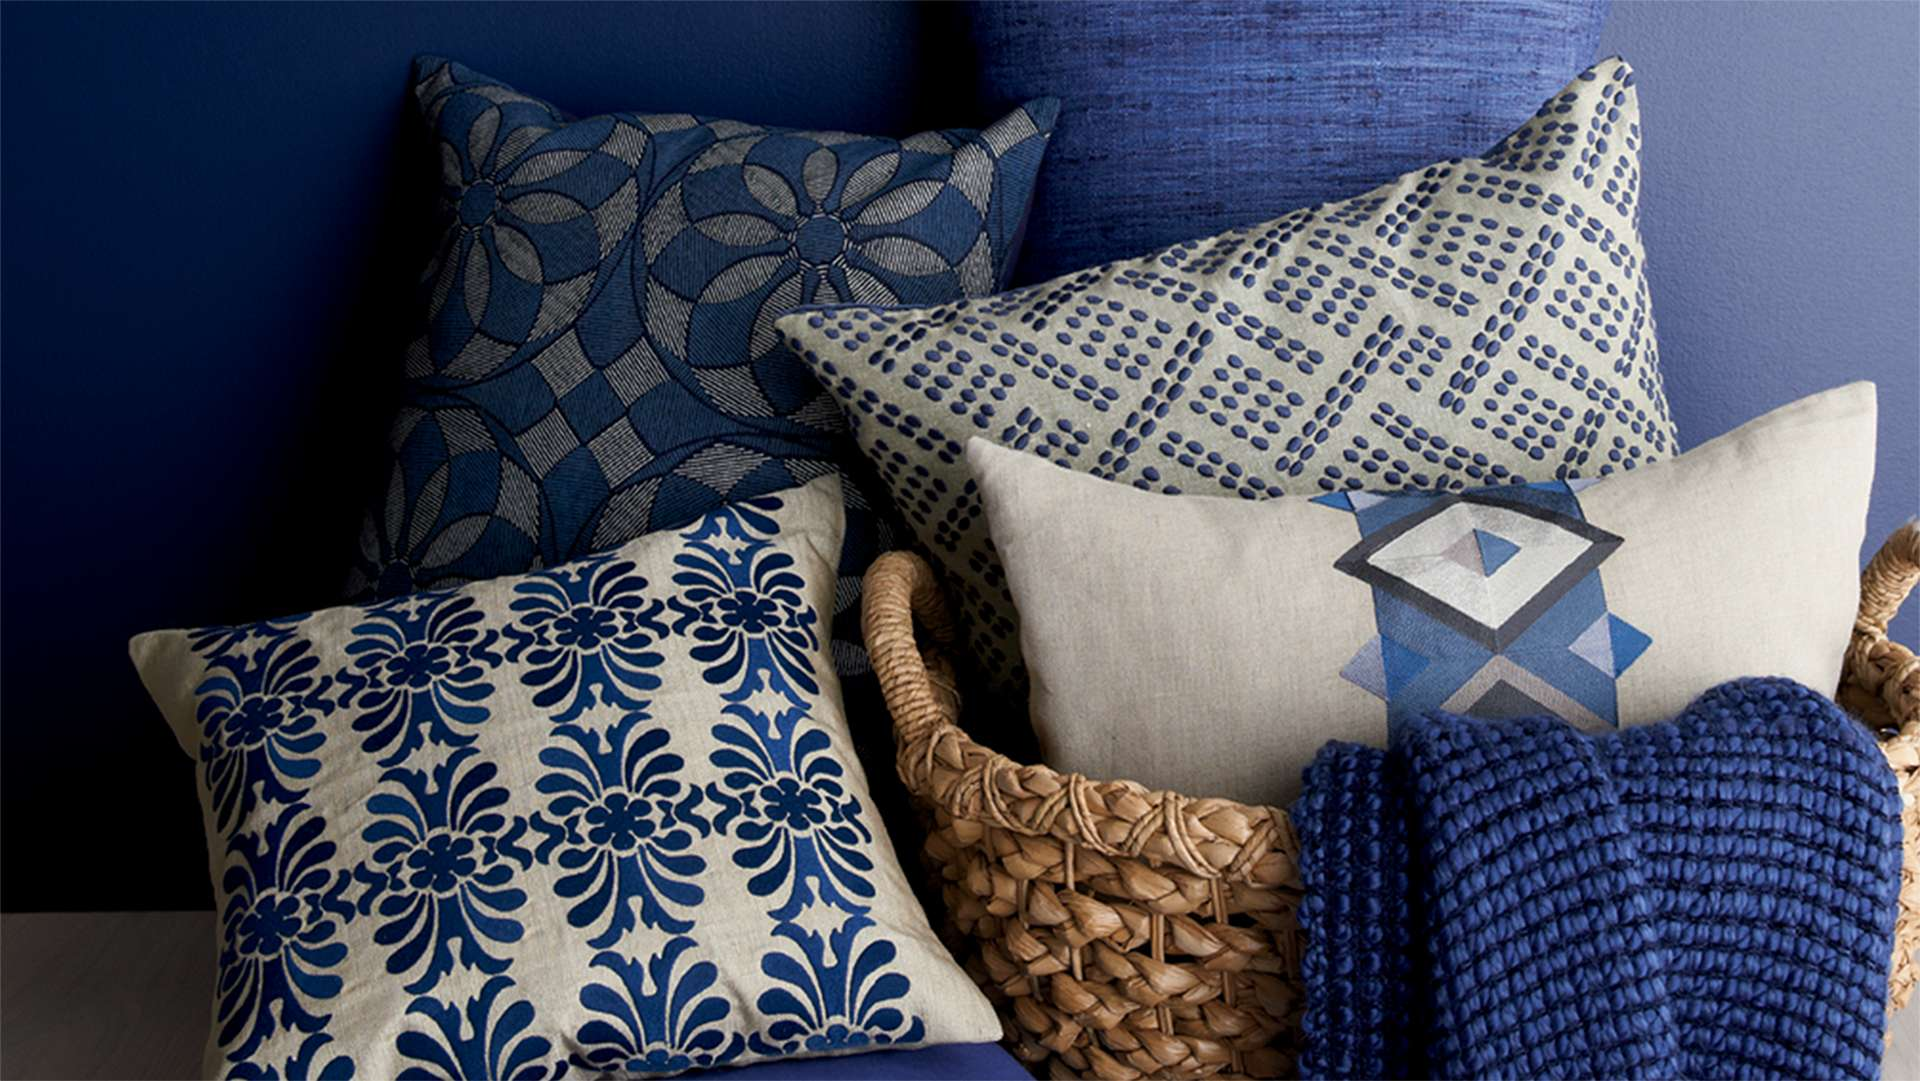 Blue pillows and throws in a basket